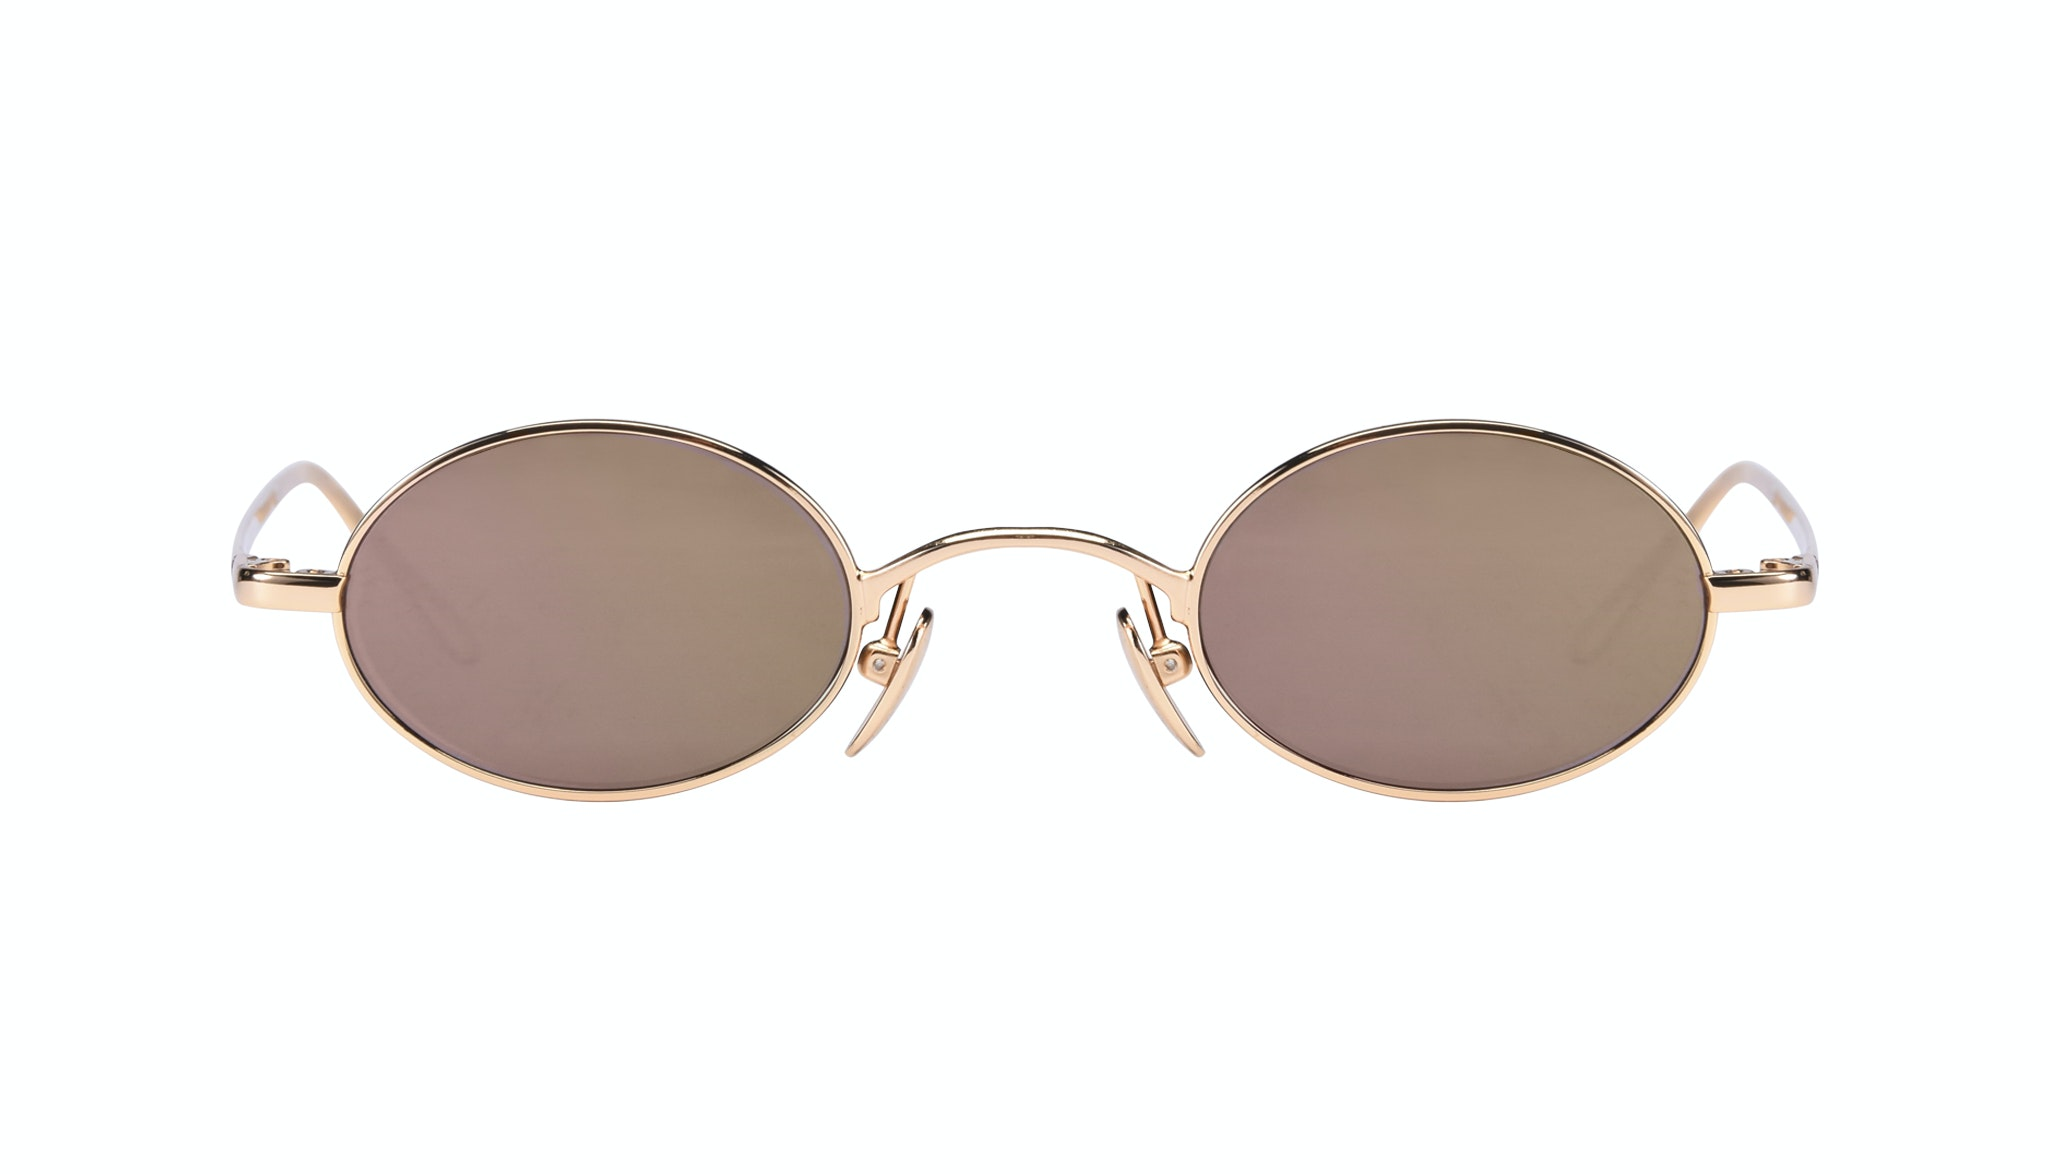 Affordable Fashion Glasses Round Sunglasses Women Stellar Gold